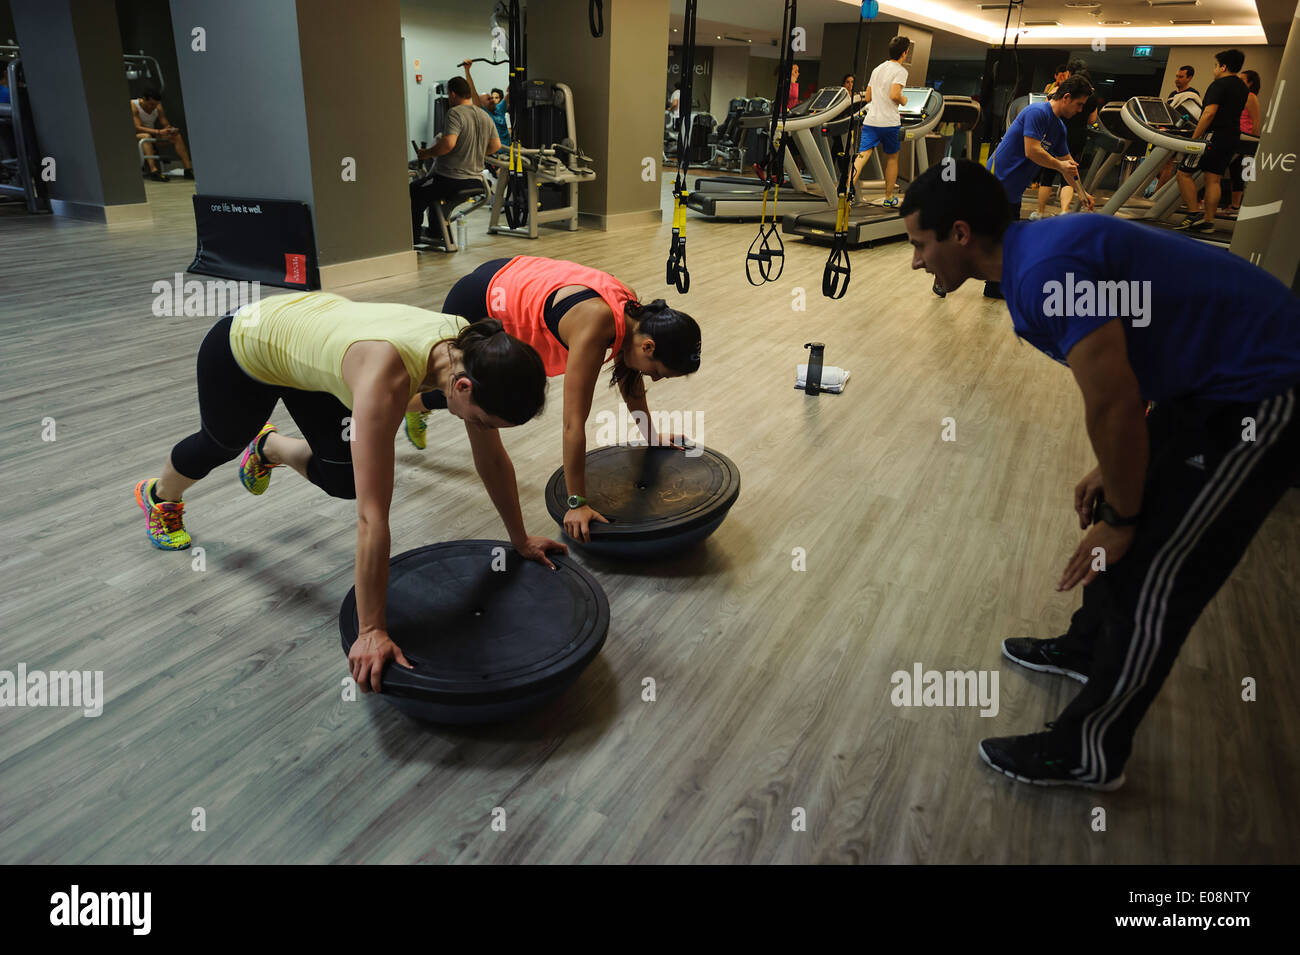 Personal trainer with clients at the gym - Stock Image